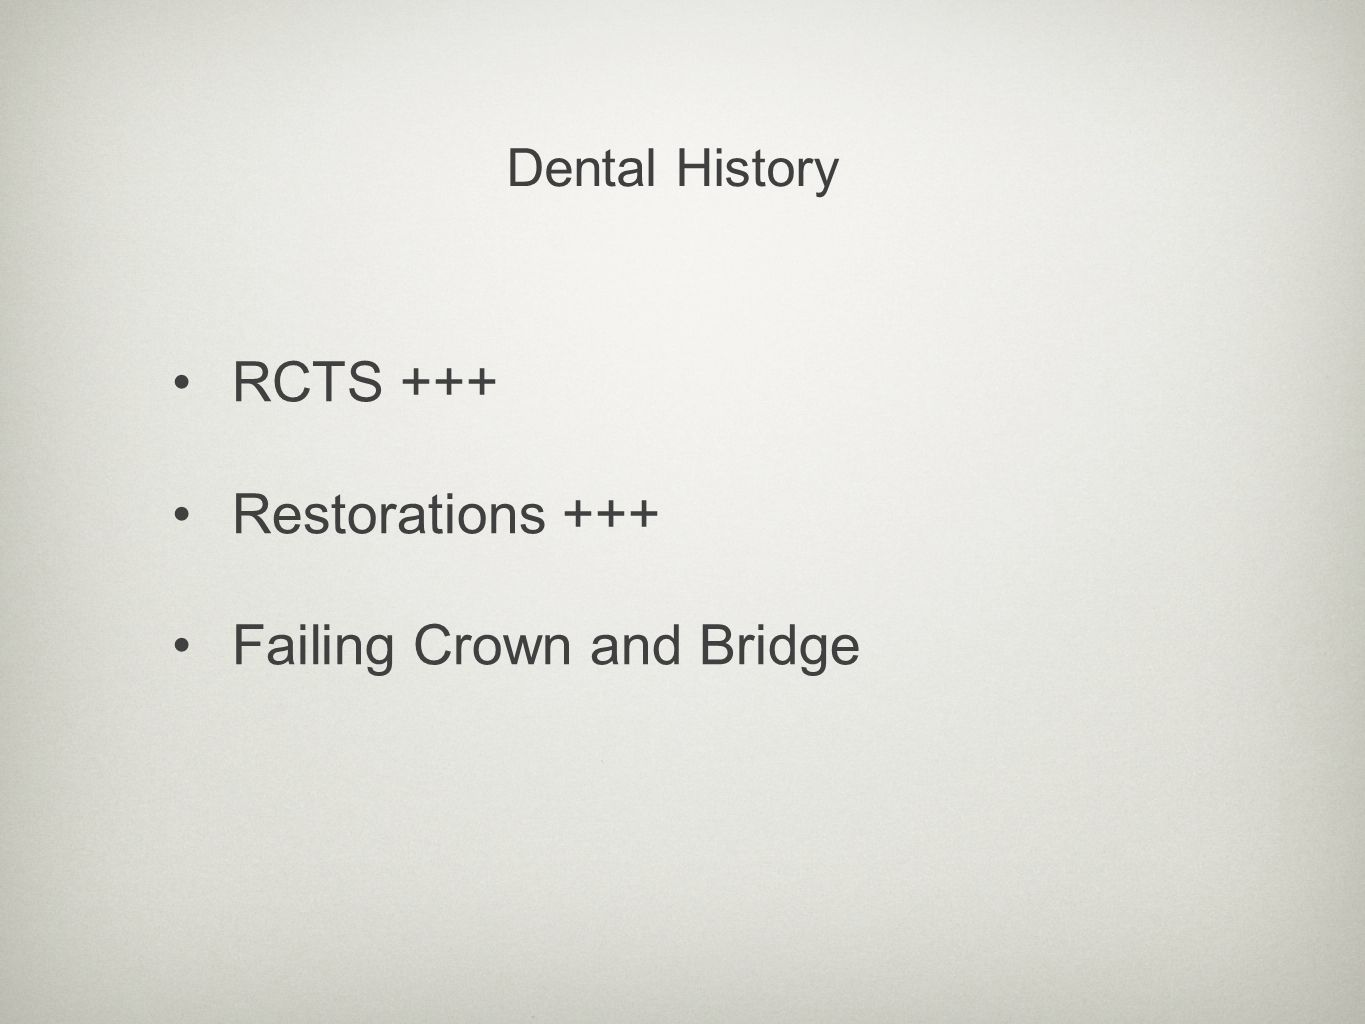 RCTS +++ Restorations +++ Failing Crown and Bridge Dental History